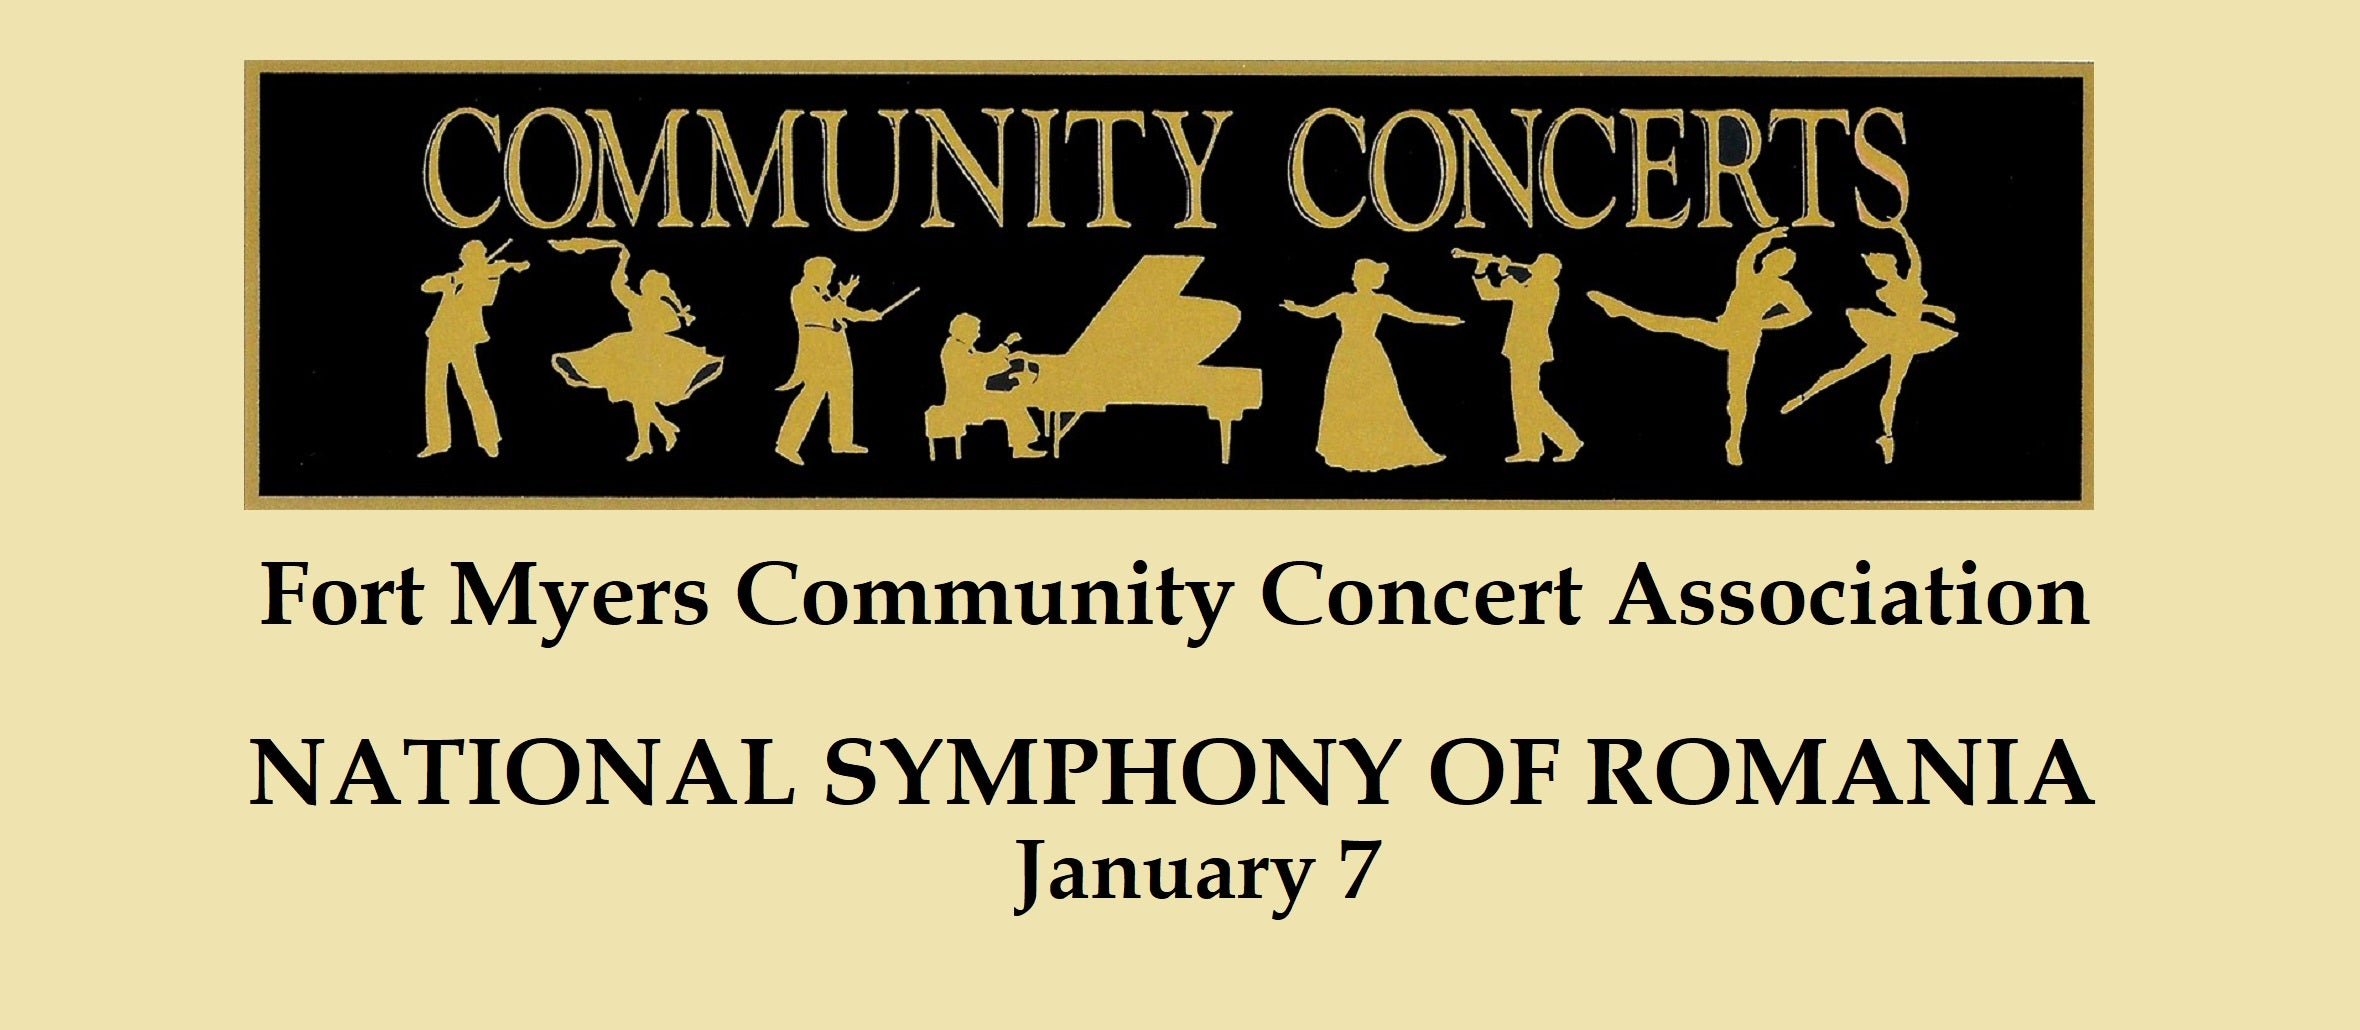 Community Concert: National Symphony of Romania